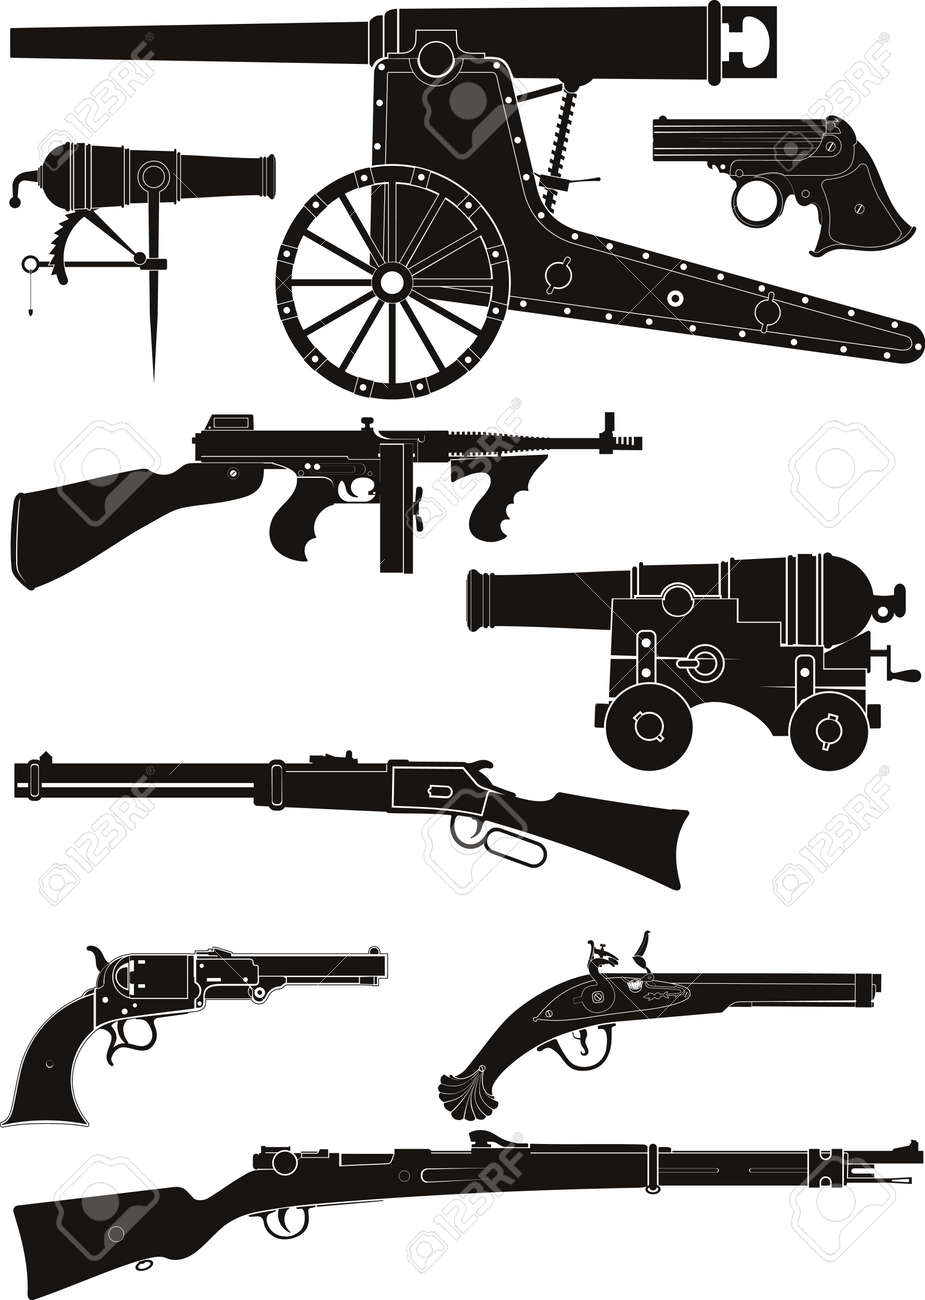 Set of silhouettes of classic firearms of different historical